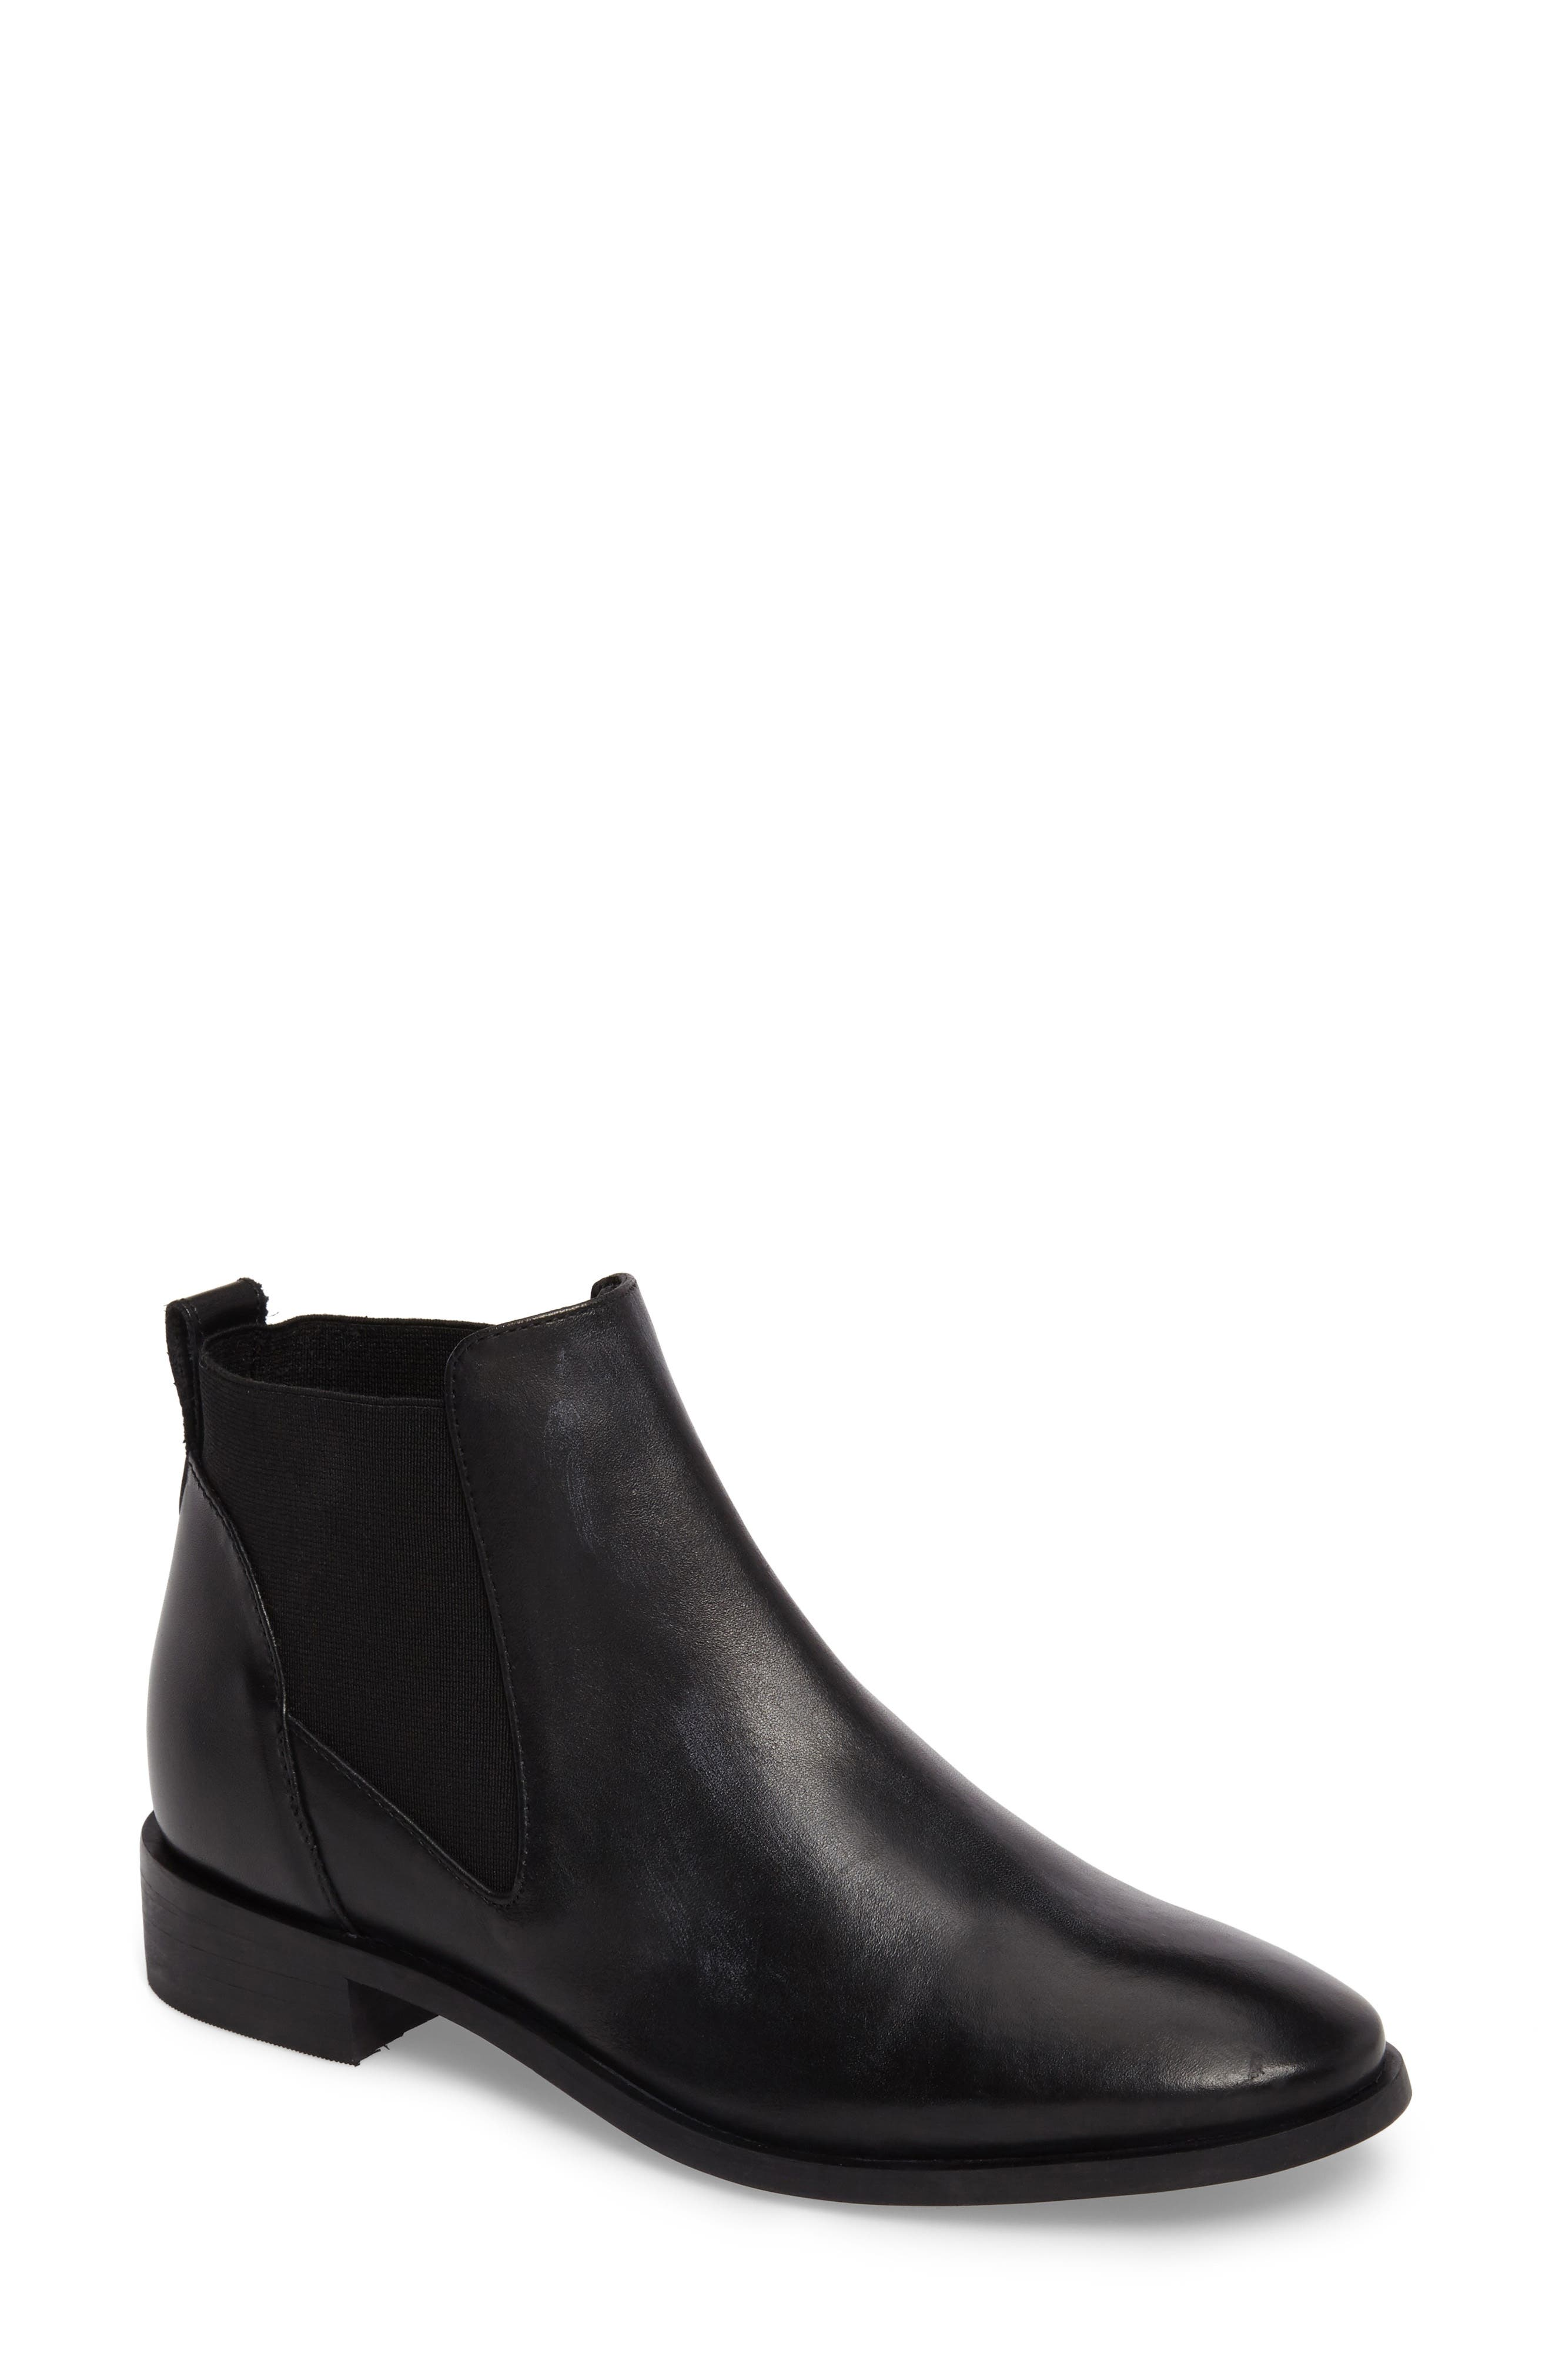 King Chelsea Boot,                         Main,                         color, Black